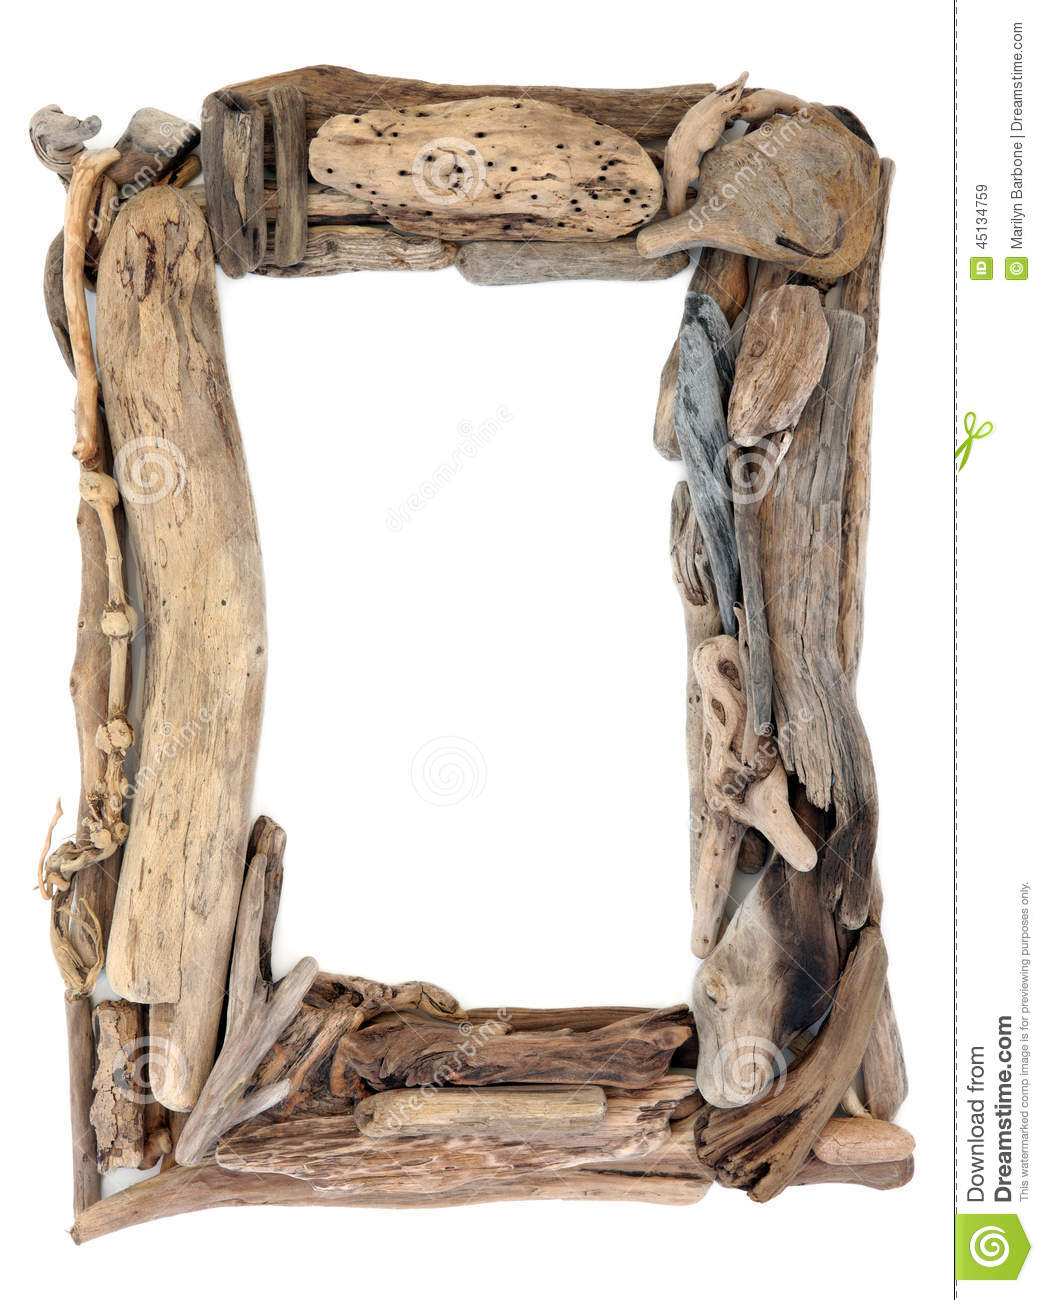 Driftwood Decor Images DIY Ideas For A